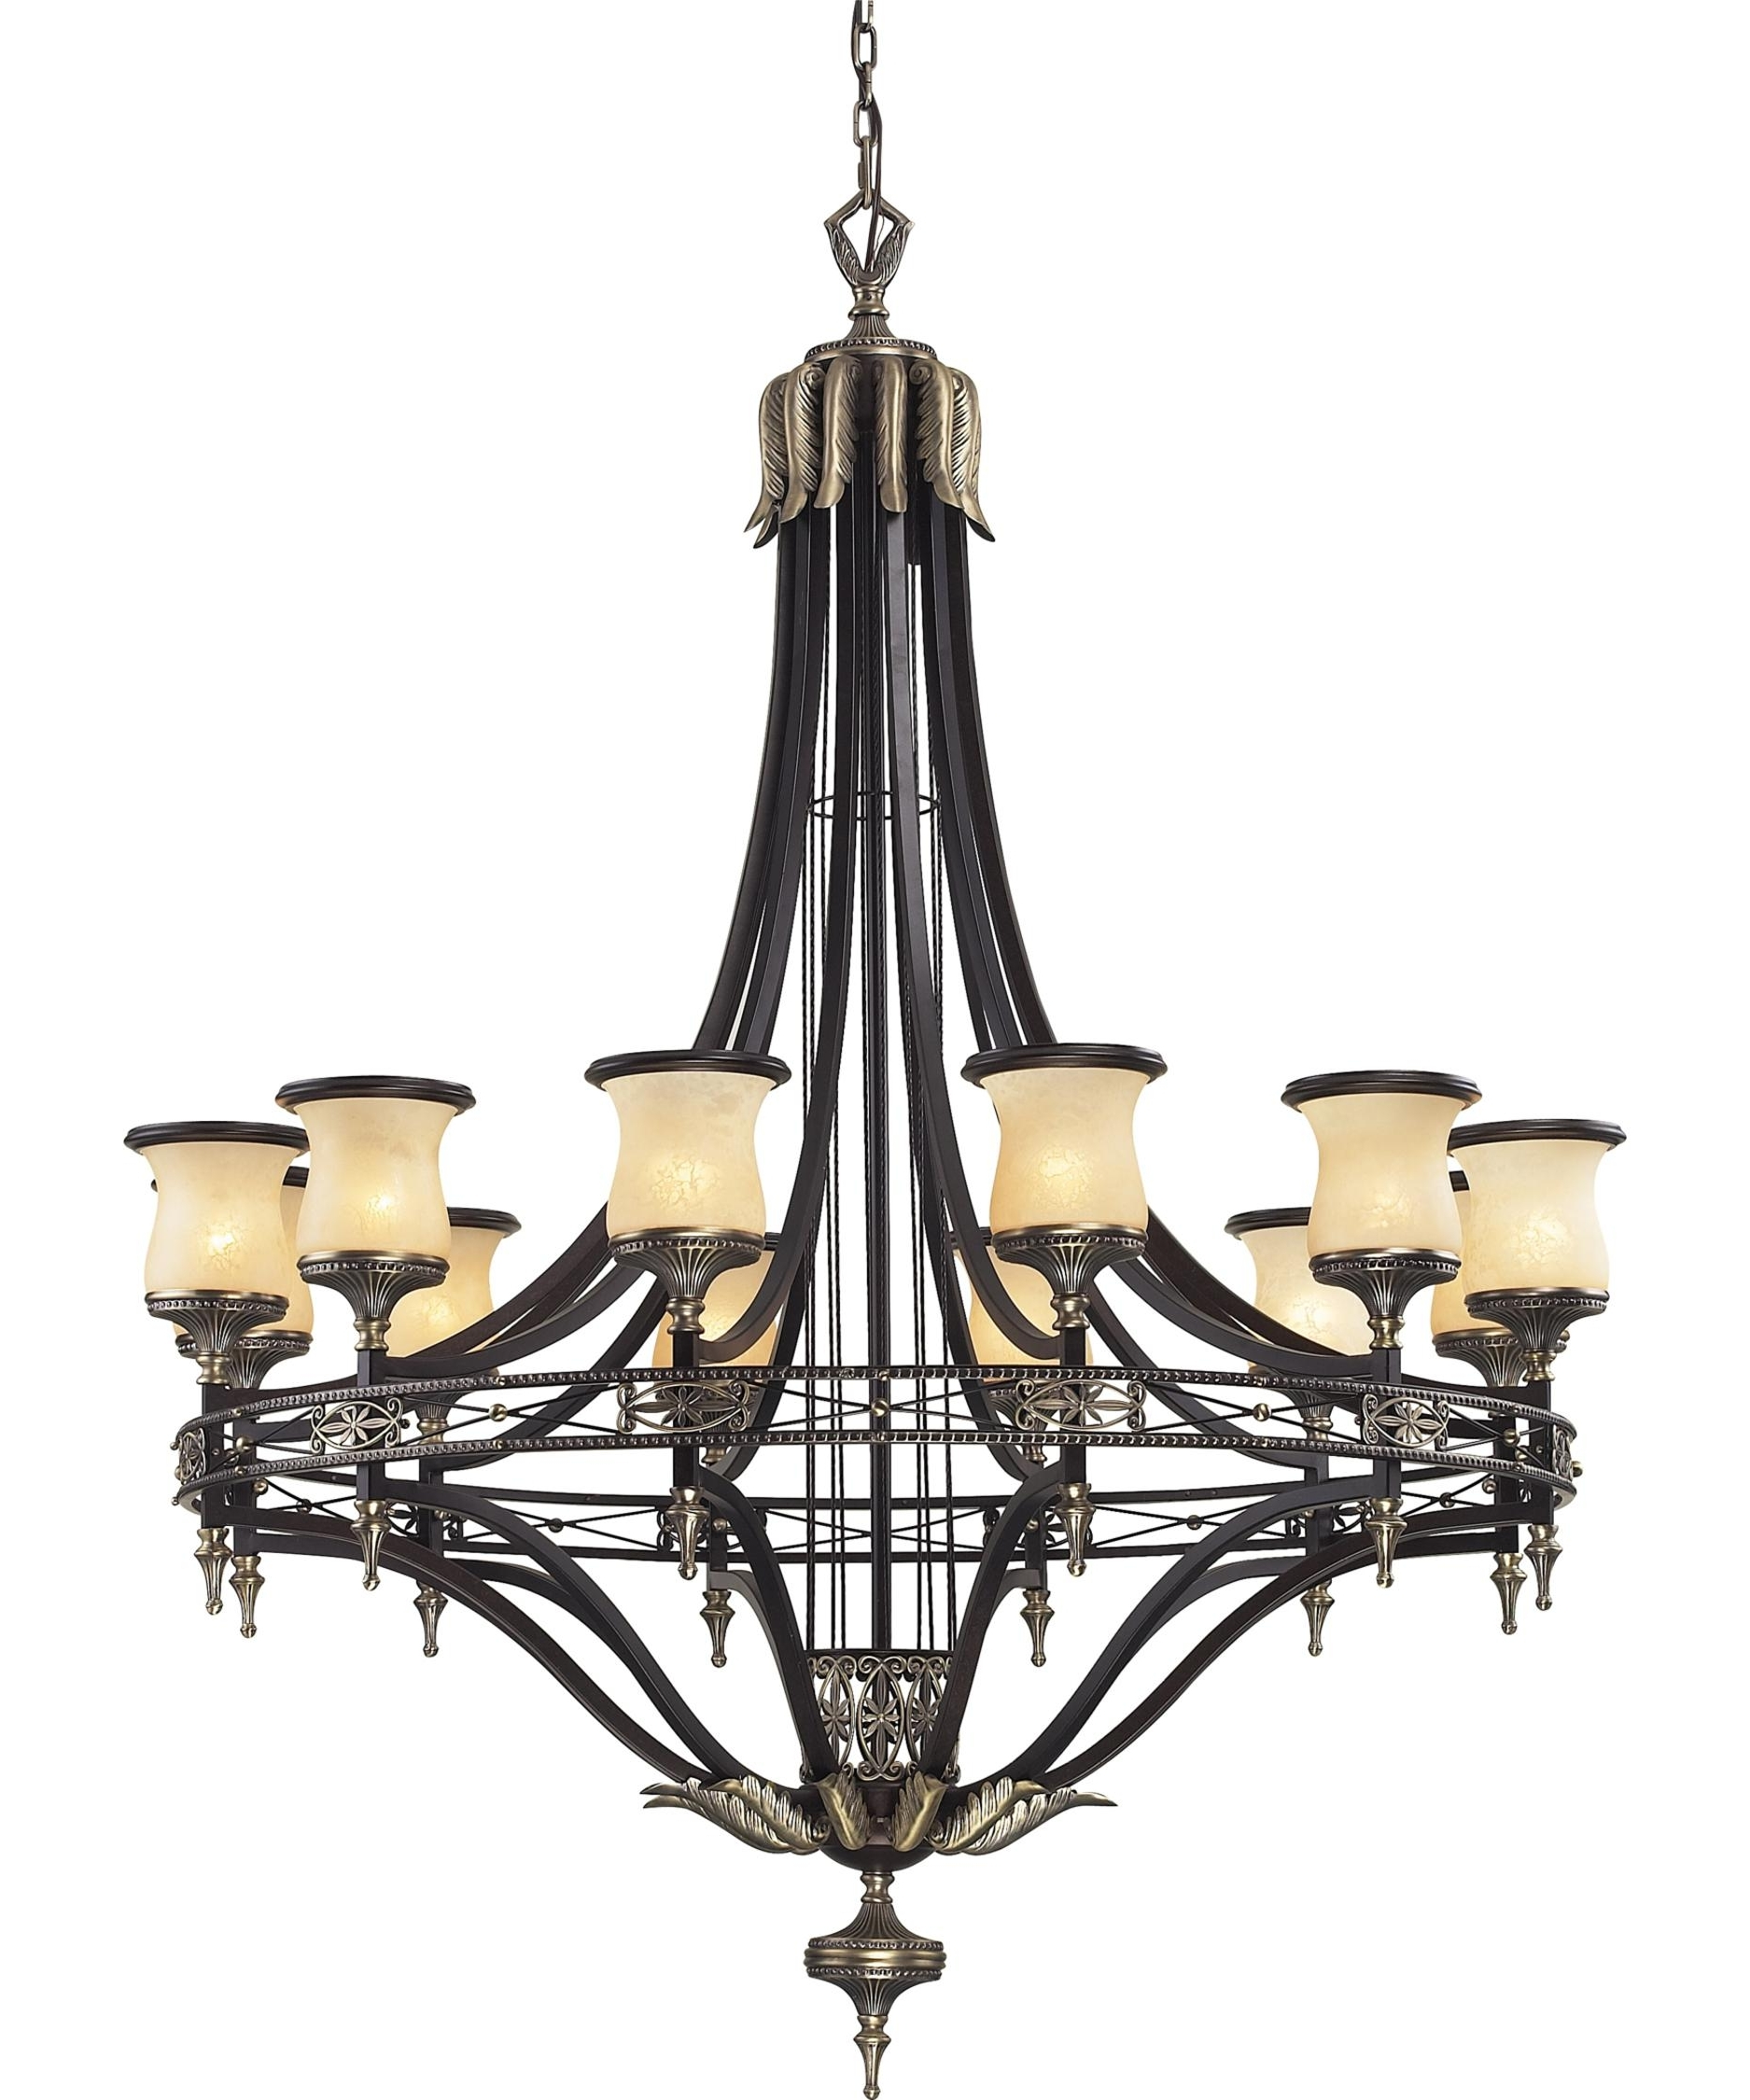 Georgian Chandelier With Regard To Most Popular Elk Lighting 2434 12 Georgian Court 48 Inch Wide 12 Light Chandelier (View 5 of 15)